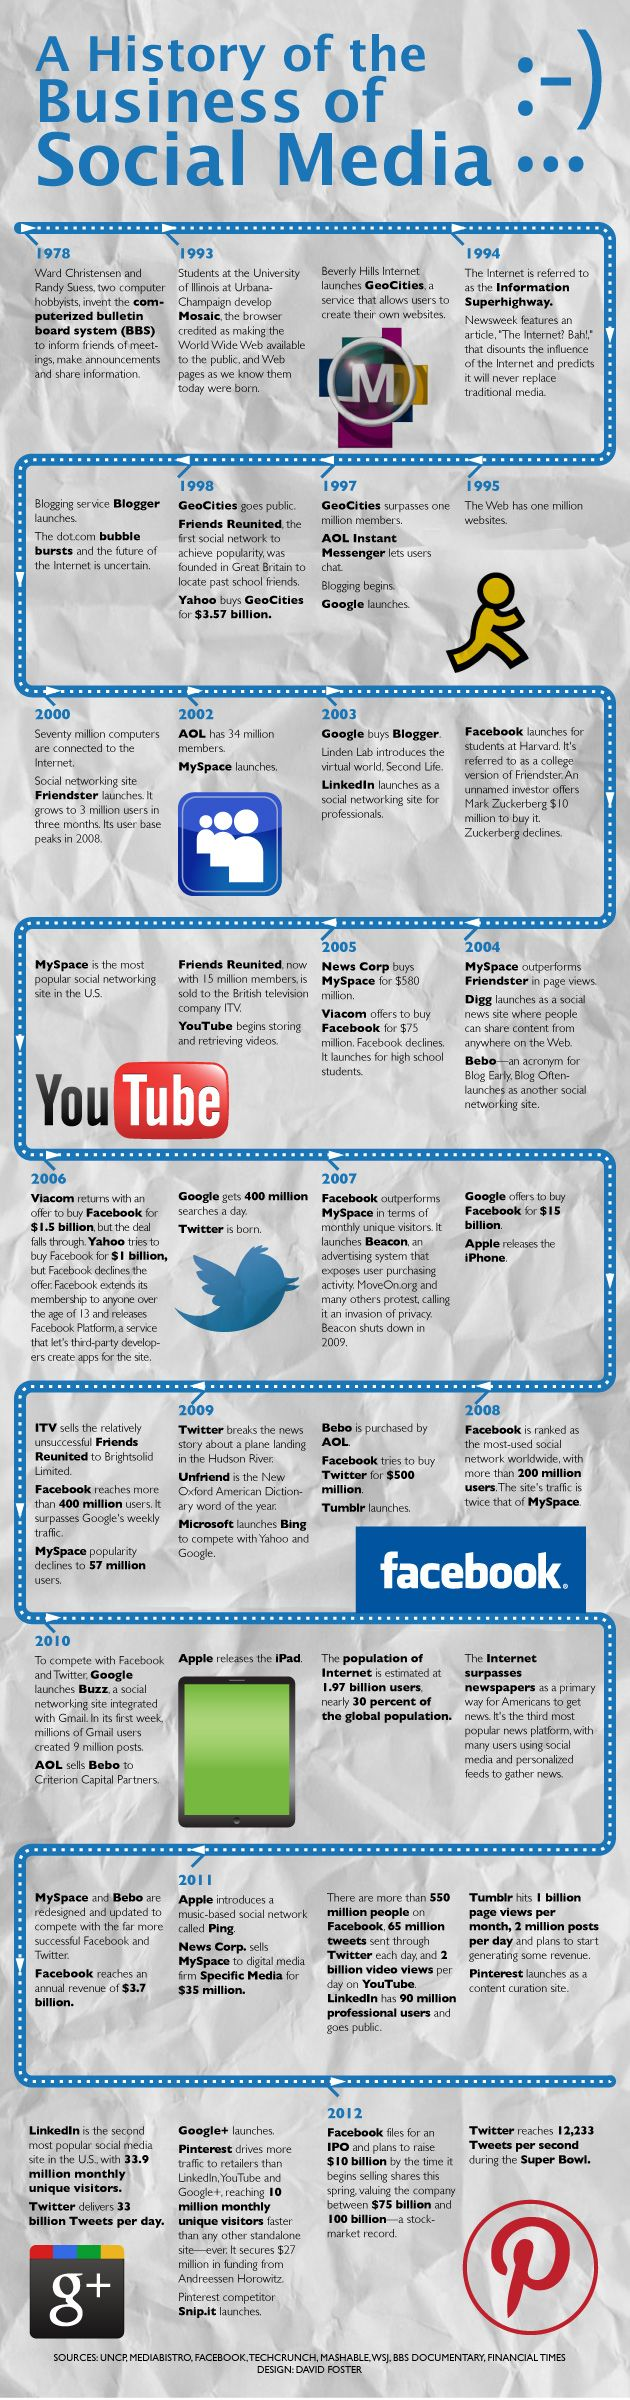 COOL INFOGRAPH...History of the business of social media  Source: www.openforum.com